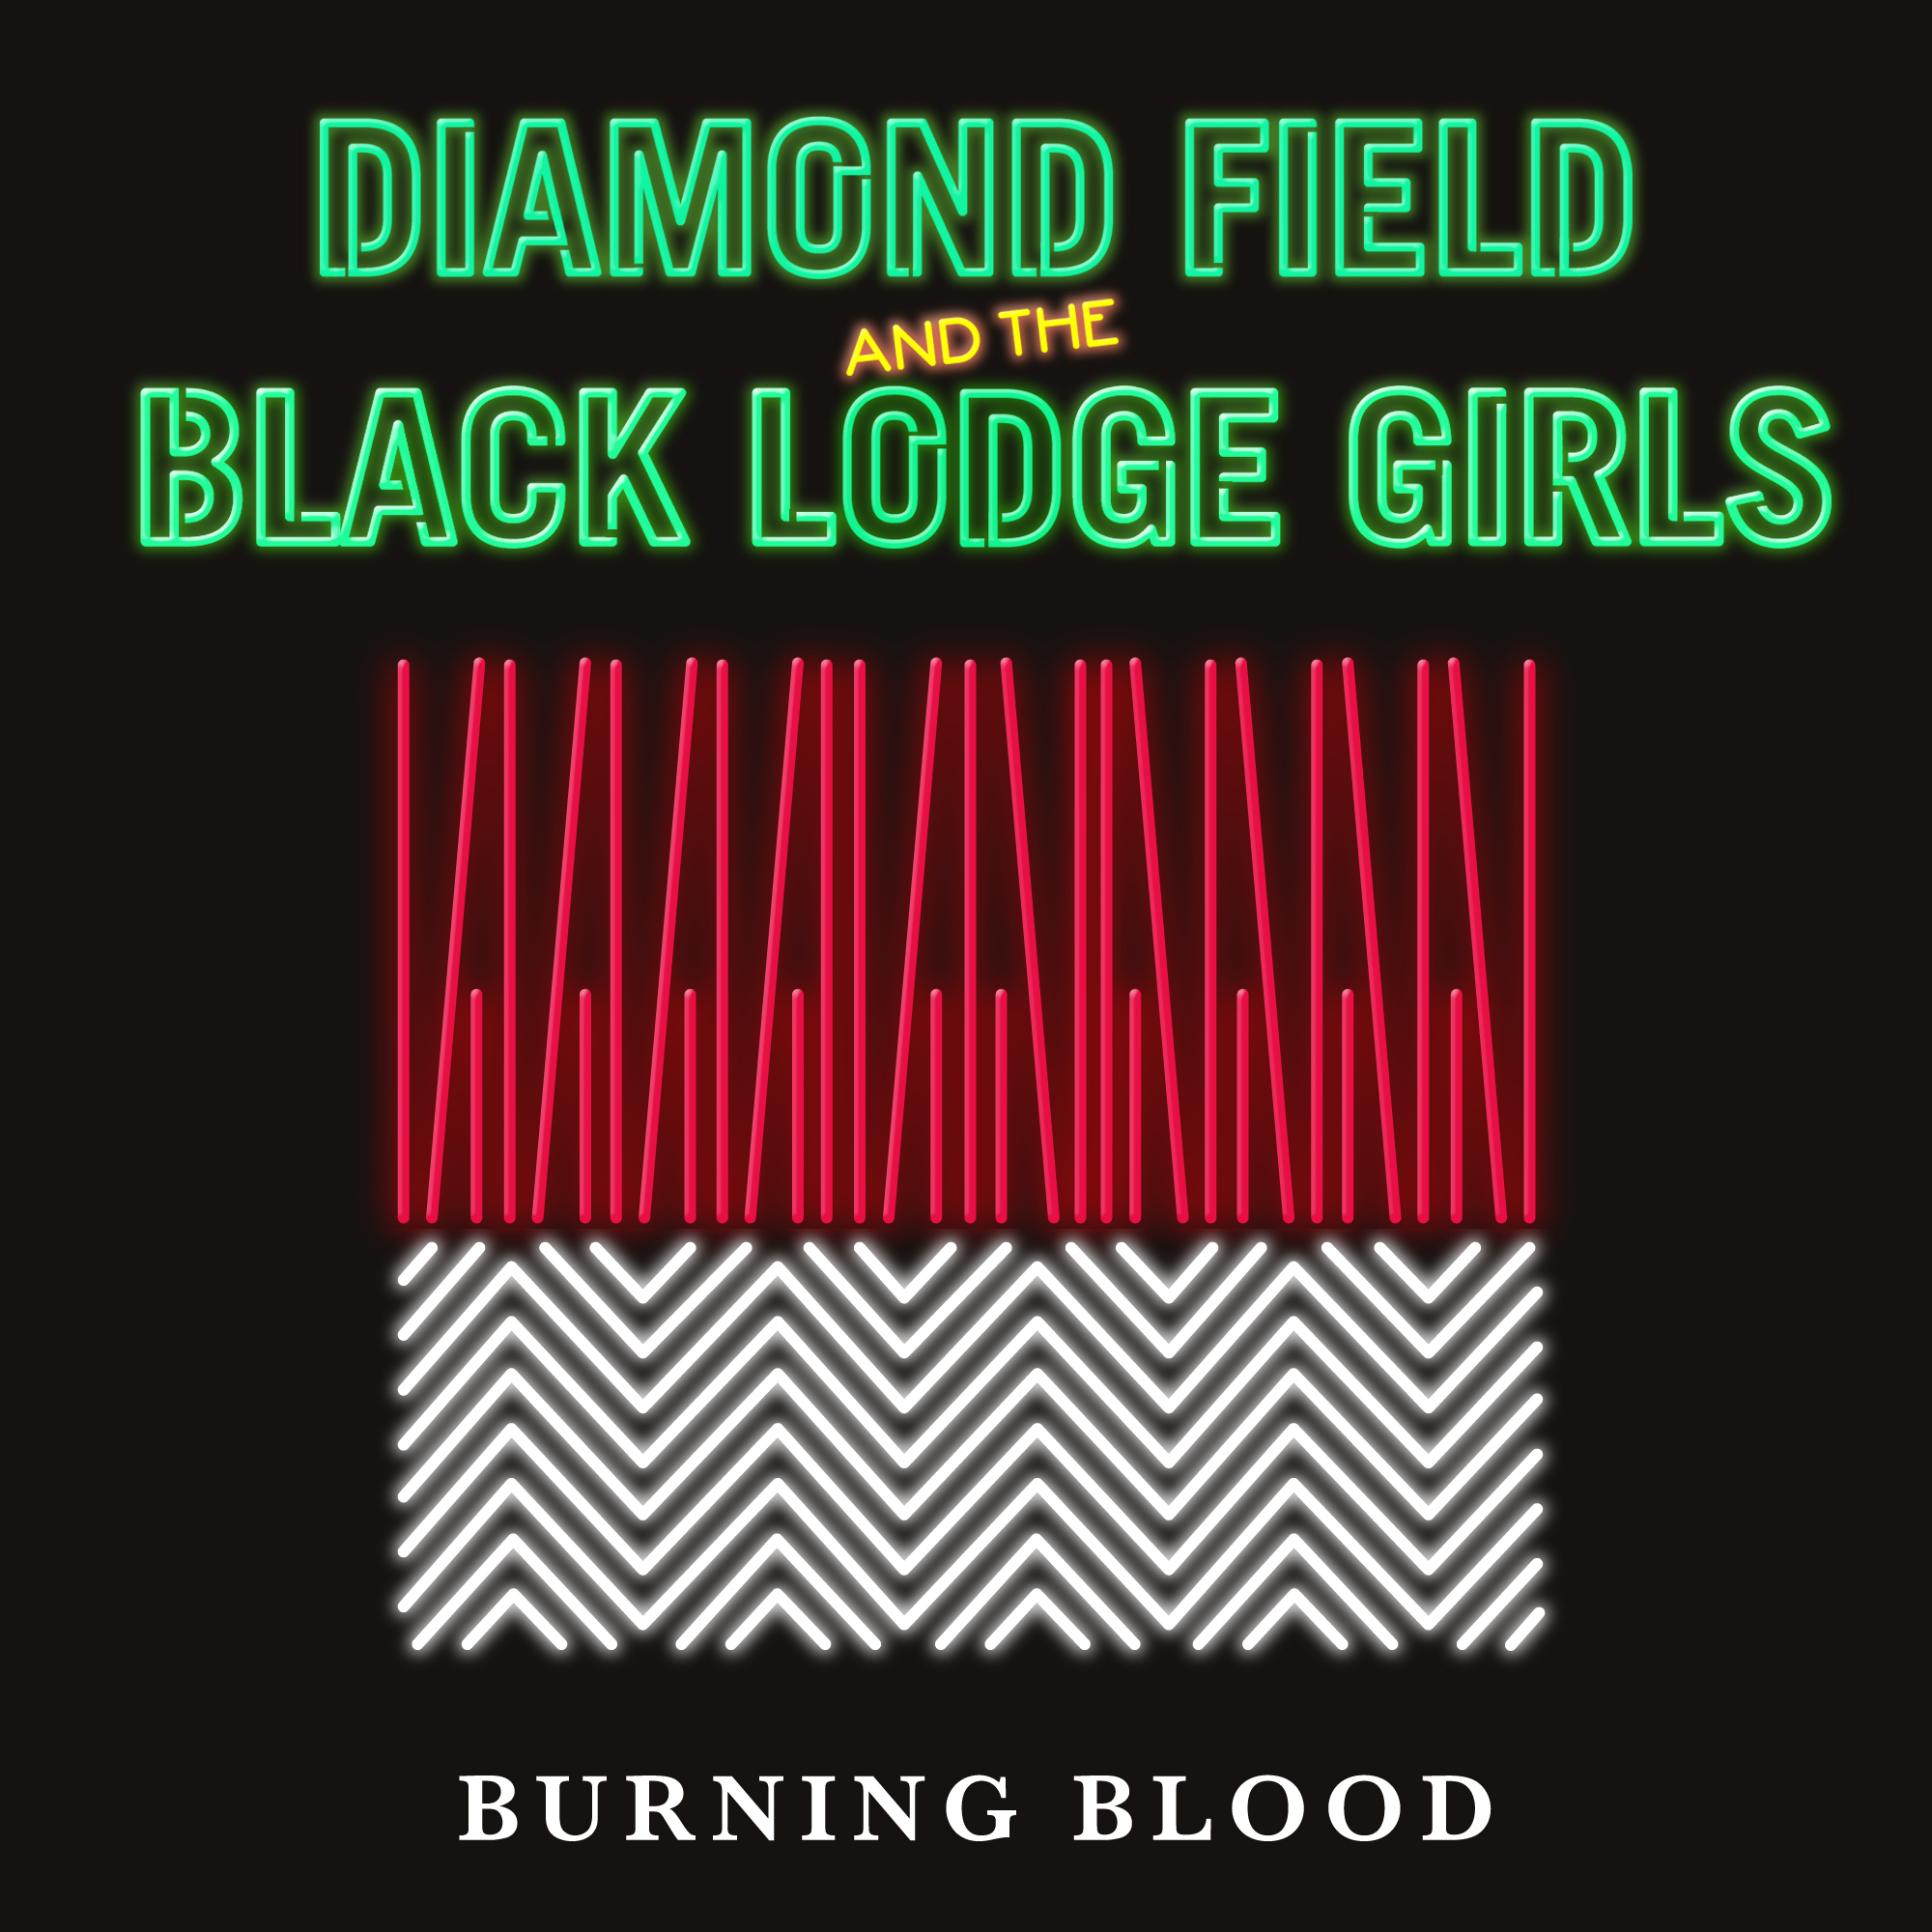 Diamond Field and the Black Lodge Girls -Burning Blood